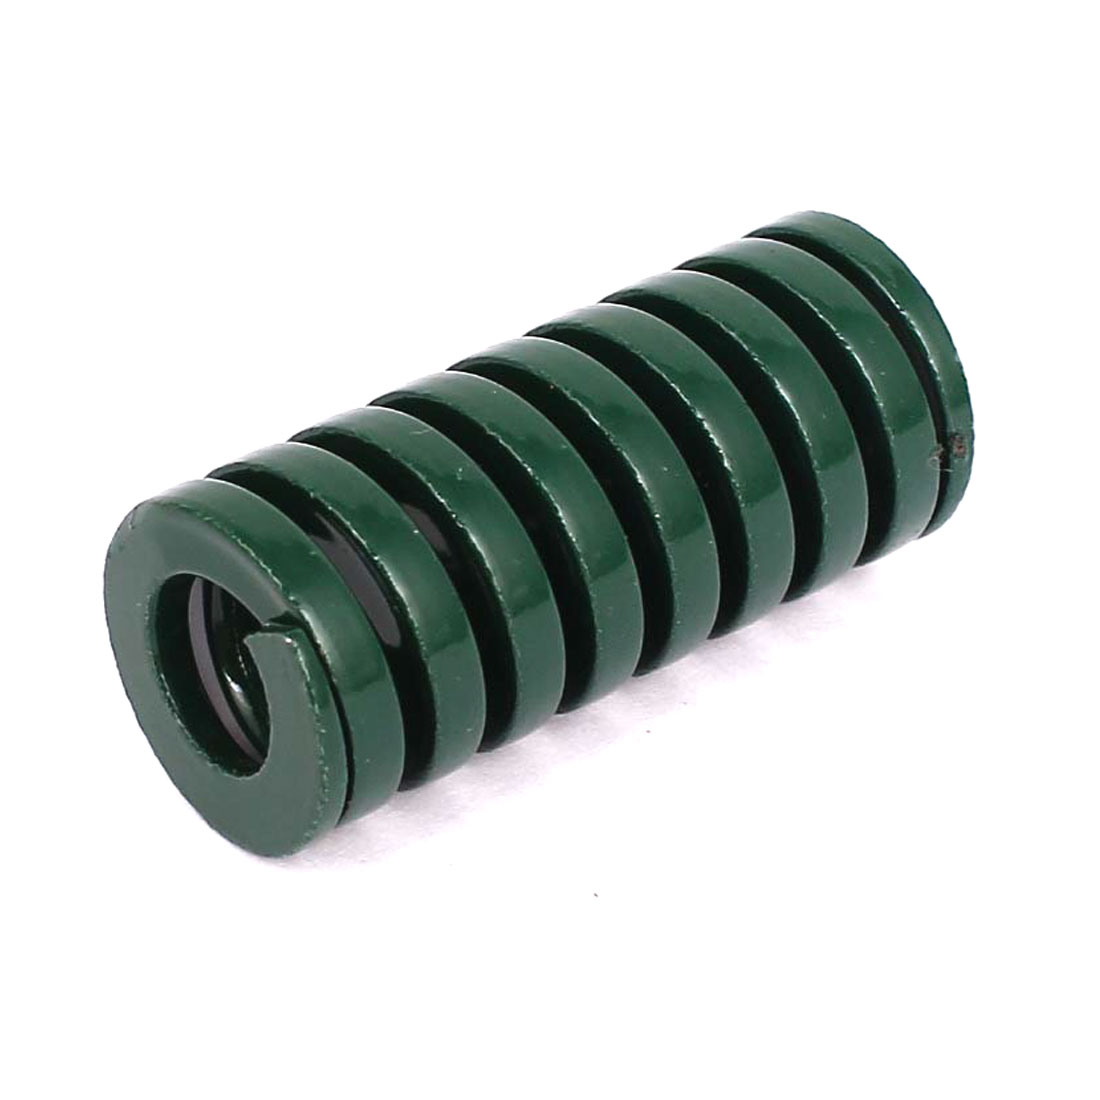 18mm OD 40mm Long Heavy Load Coil Stamping Compression Mold Die Spring Green